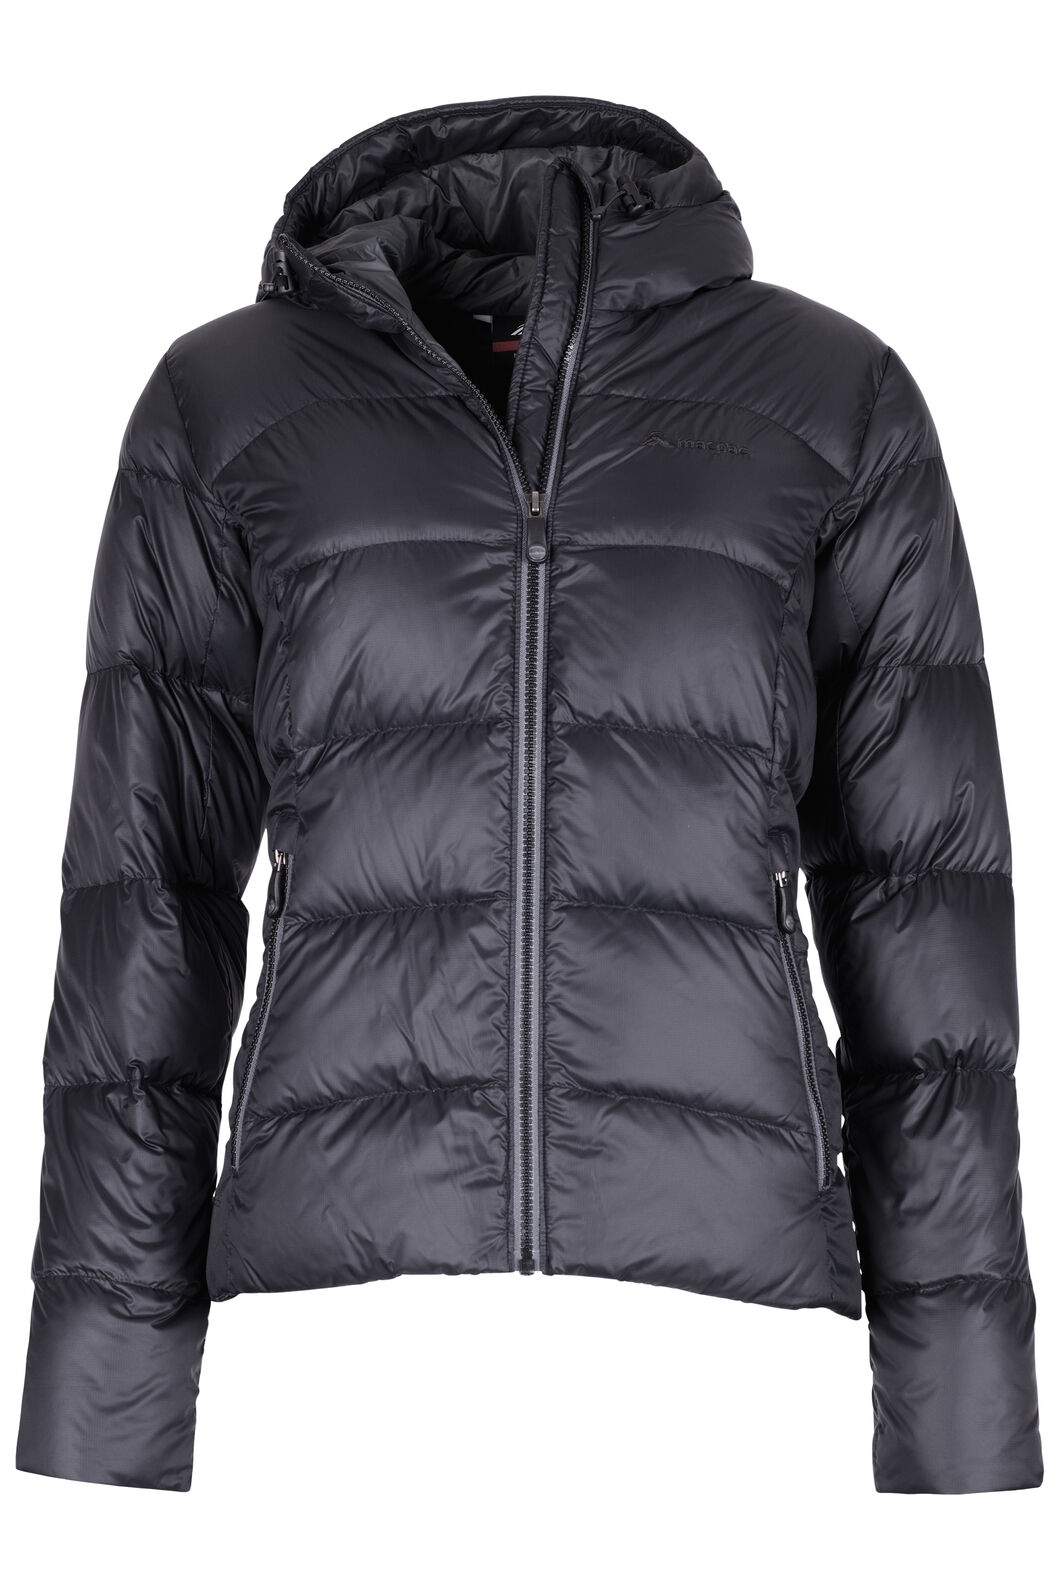 Sundowner Hooded HyperDRY™ Down Jacket - Women's, Black, hi-res